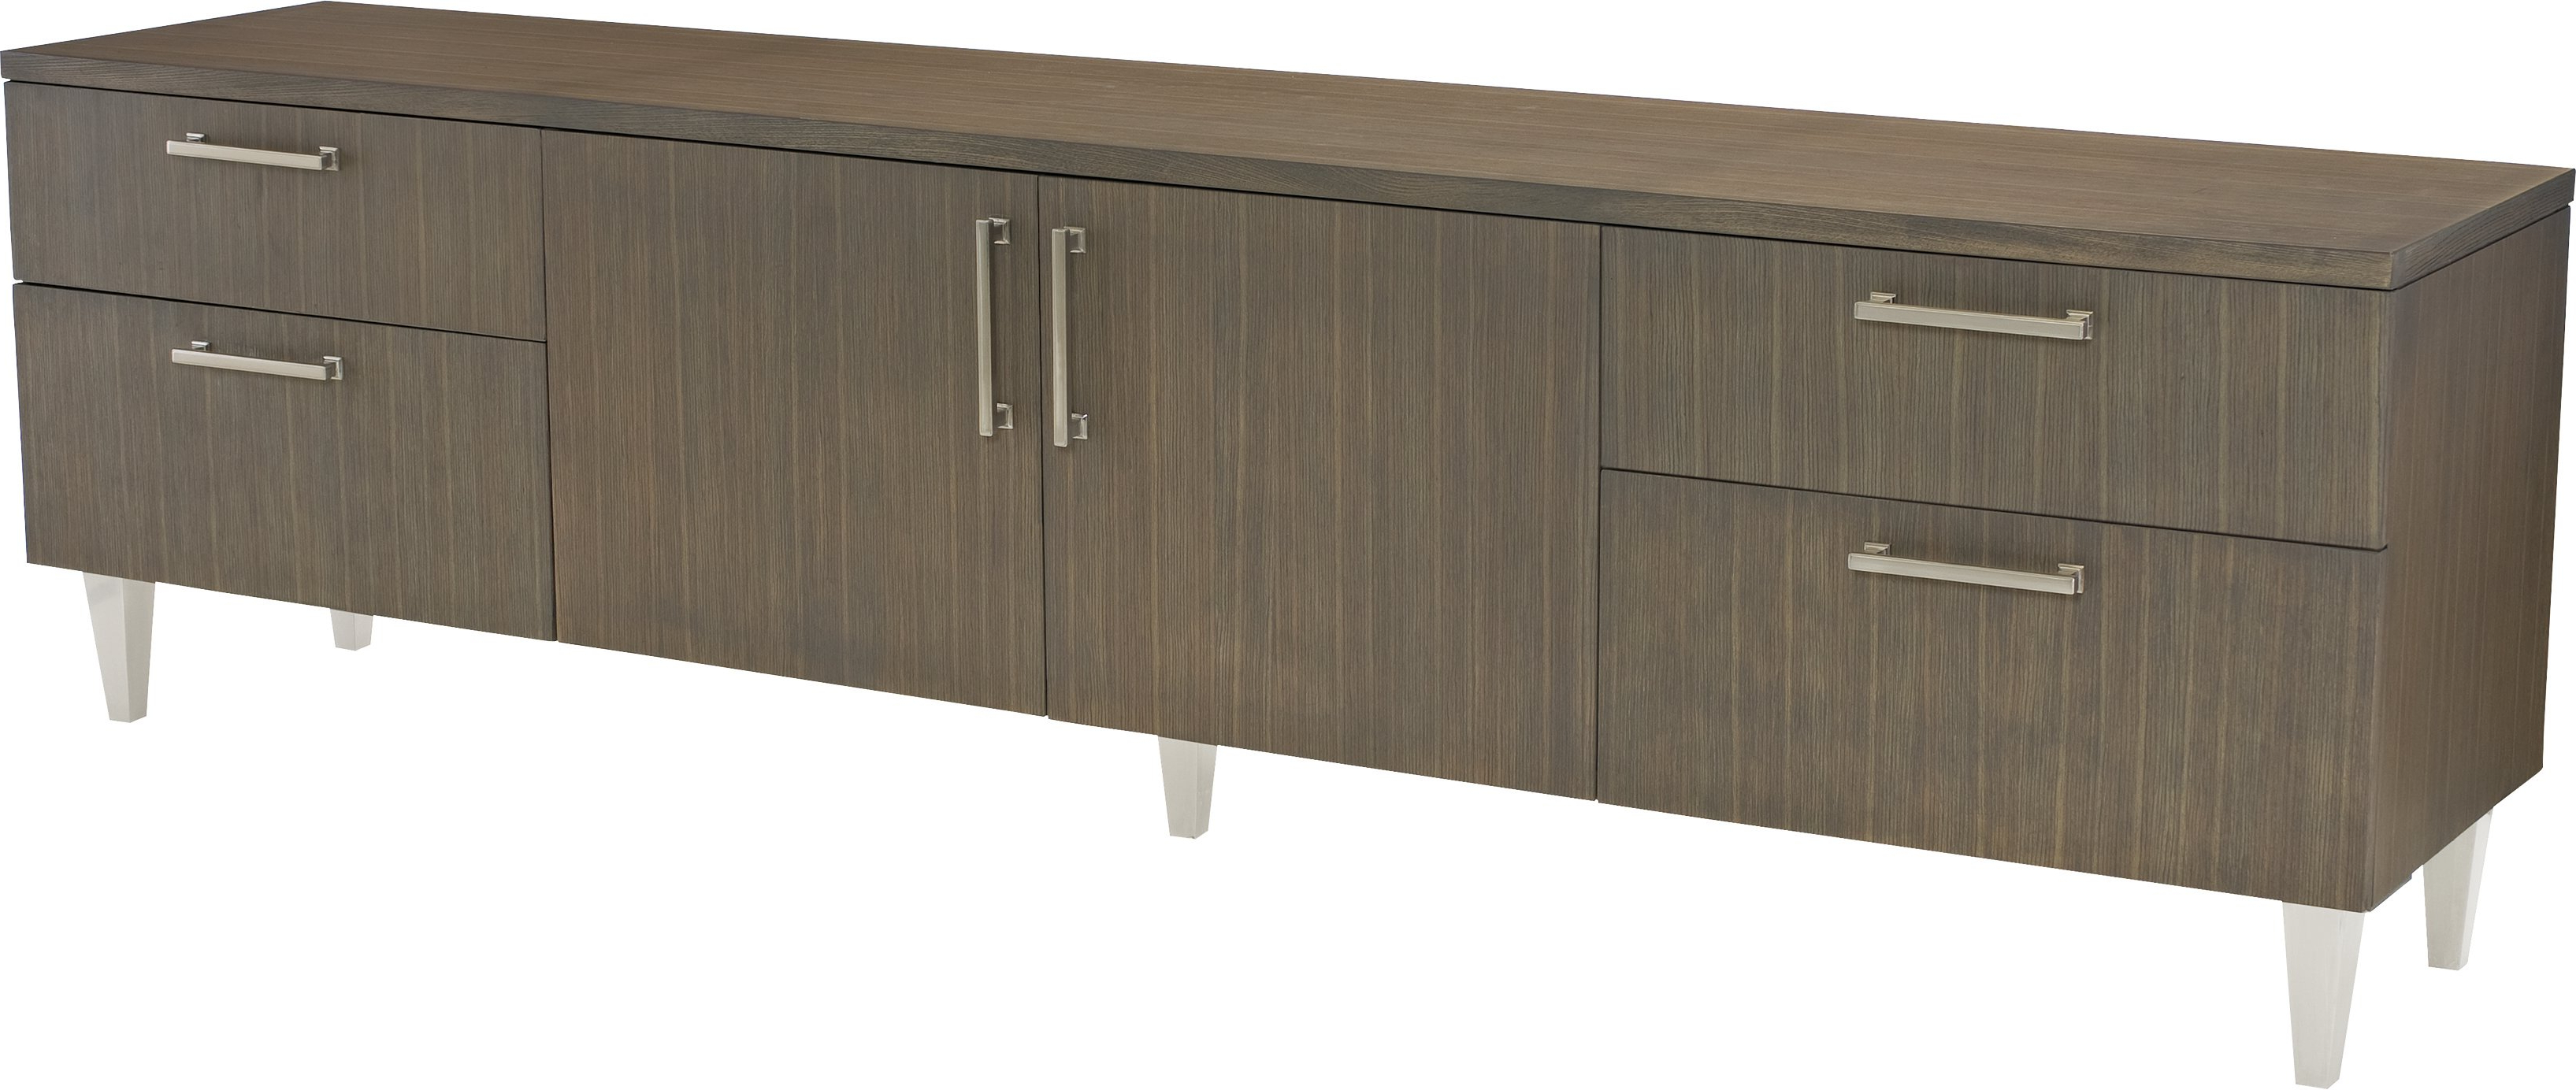 70 Inch Tv Stands | Joss & Main Throughout Bale Rustic Grey 82 Inch Tv Stands (View 10 of 20)